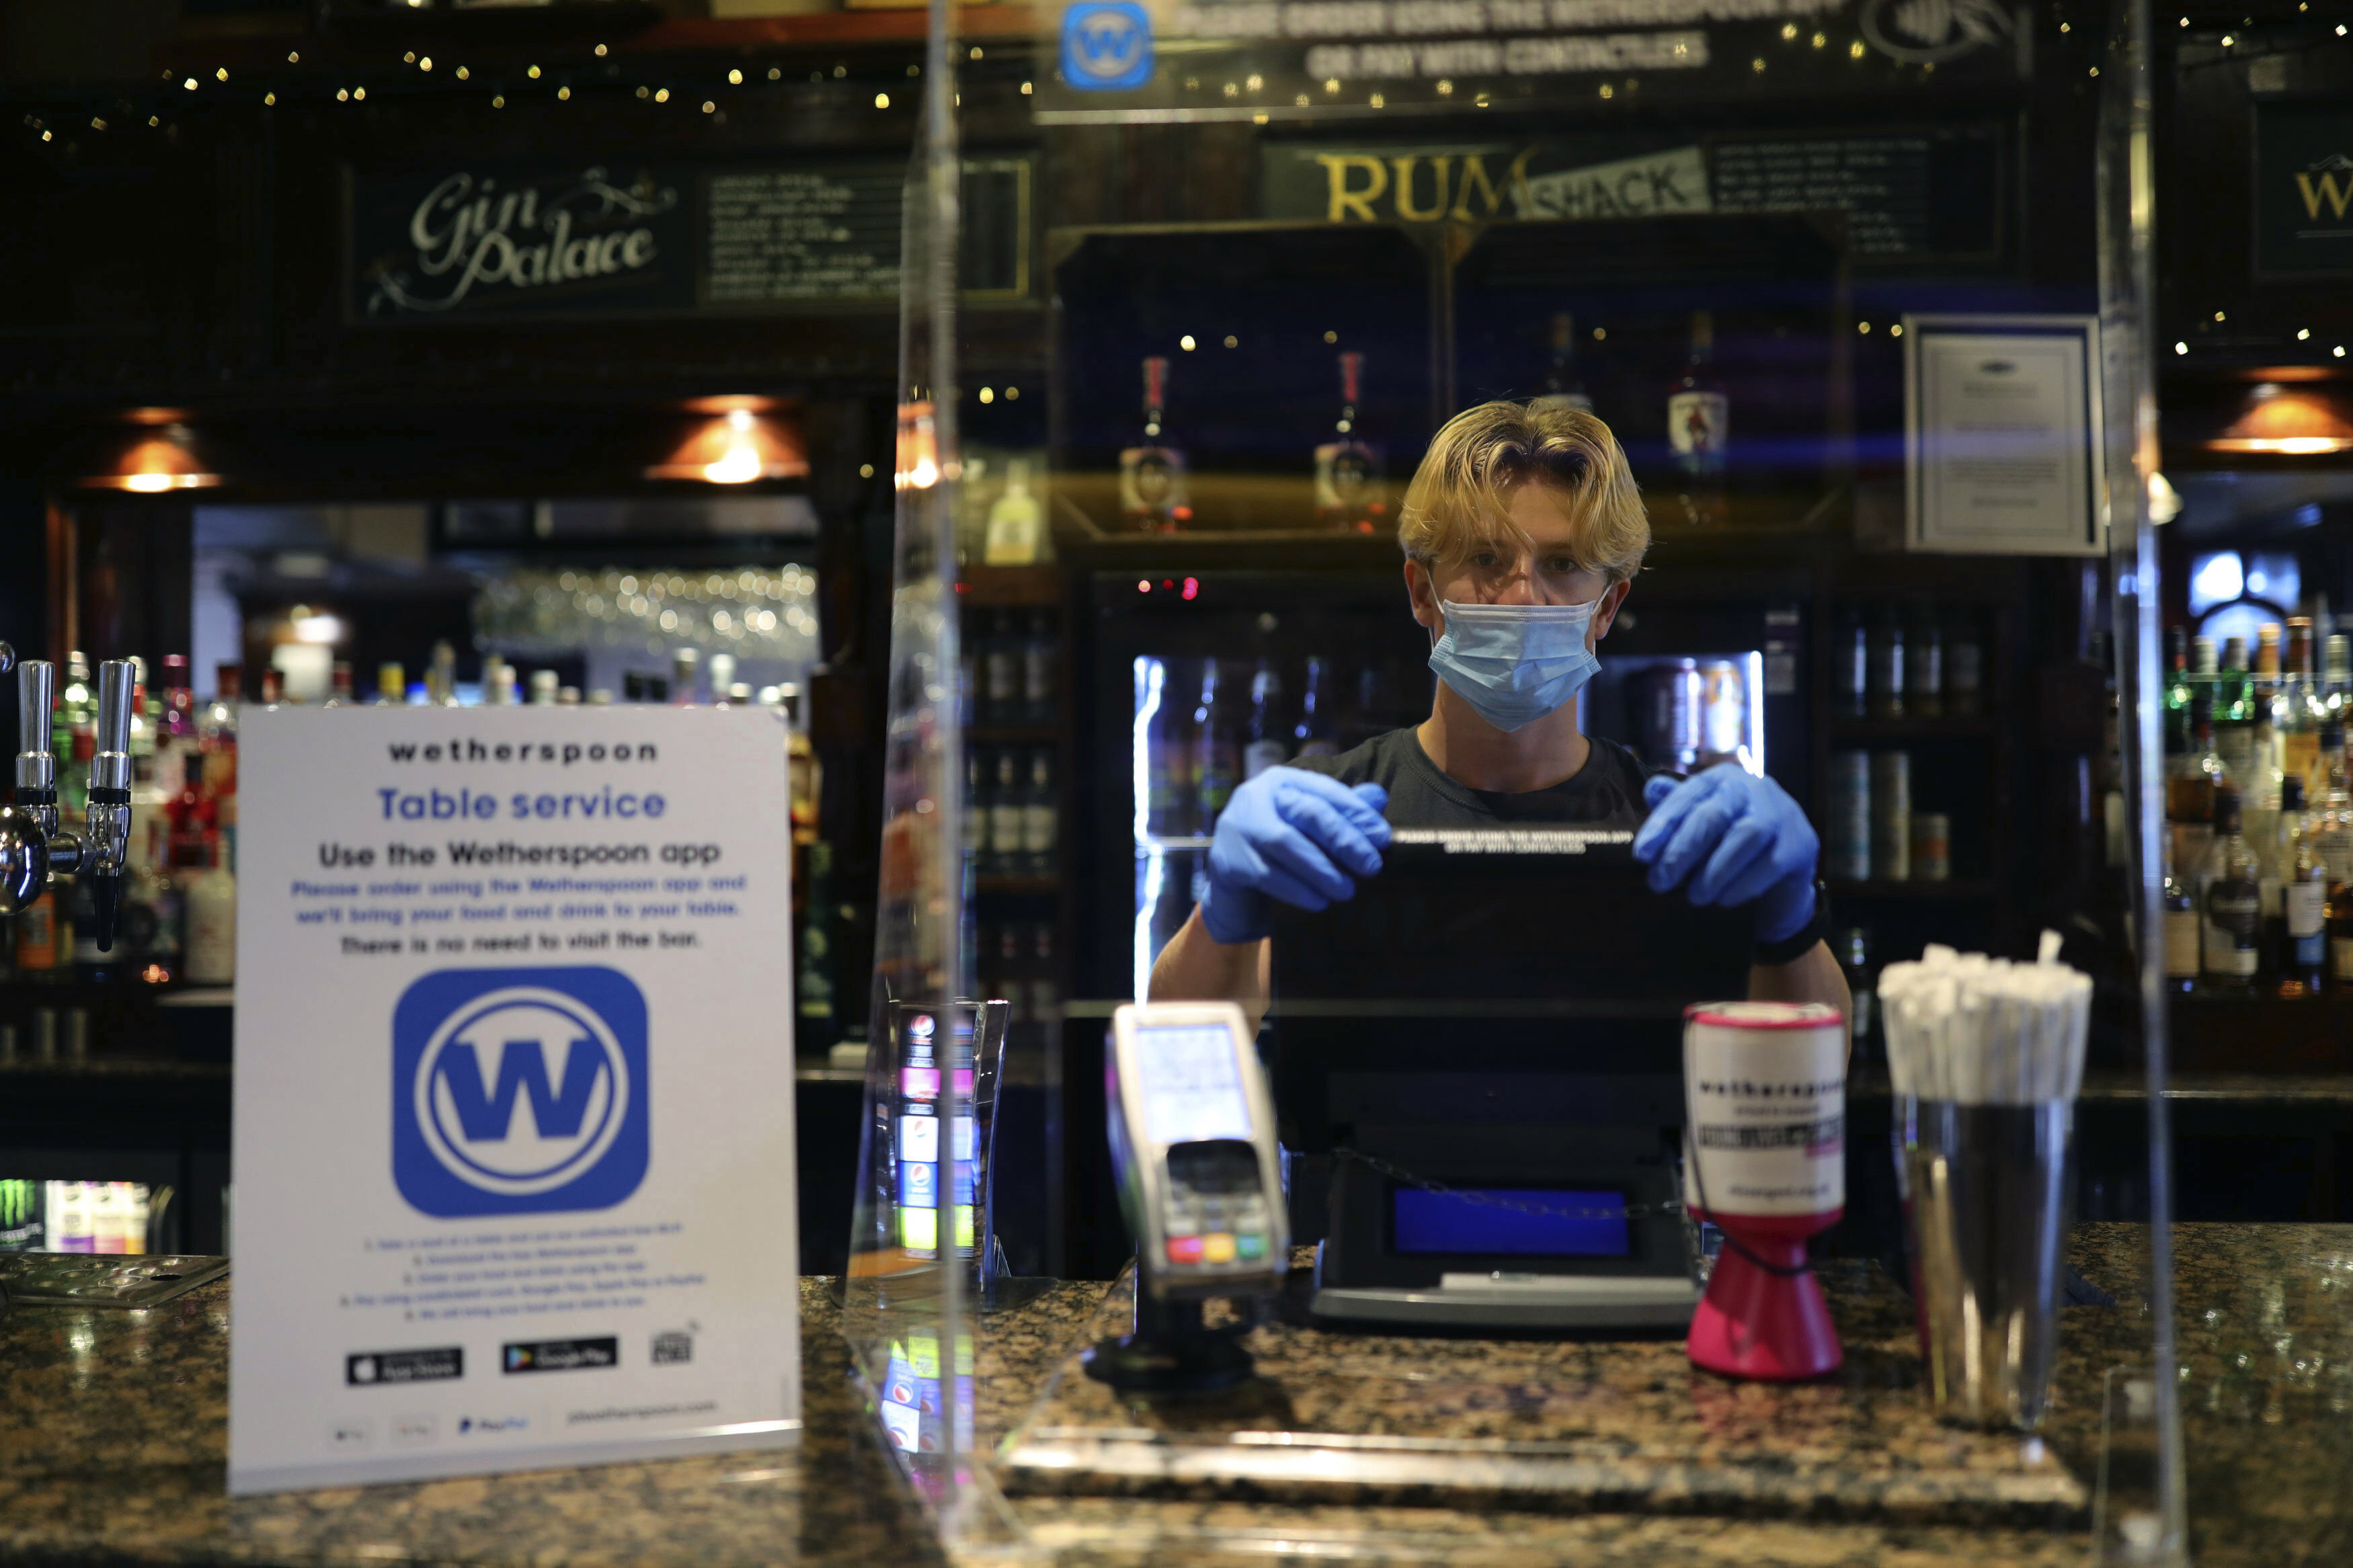 A member of staff wearing PPE, stands behind a screen as he waits to serve drinkers at the reopening The Toll Gate, a Wetherspoons pub in Hornsey, north London, as coronavirus lockdown restrictions are eased across the country, Saturday July 4, 2020.